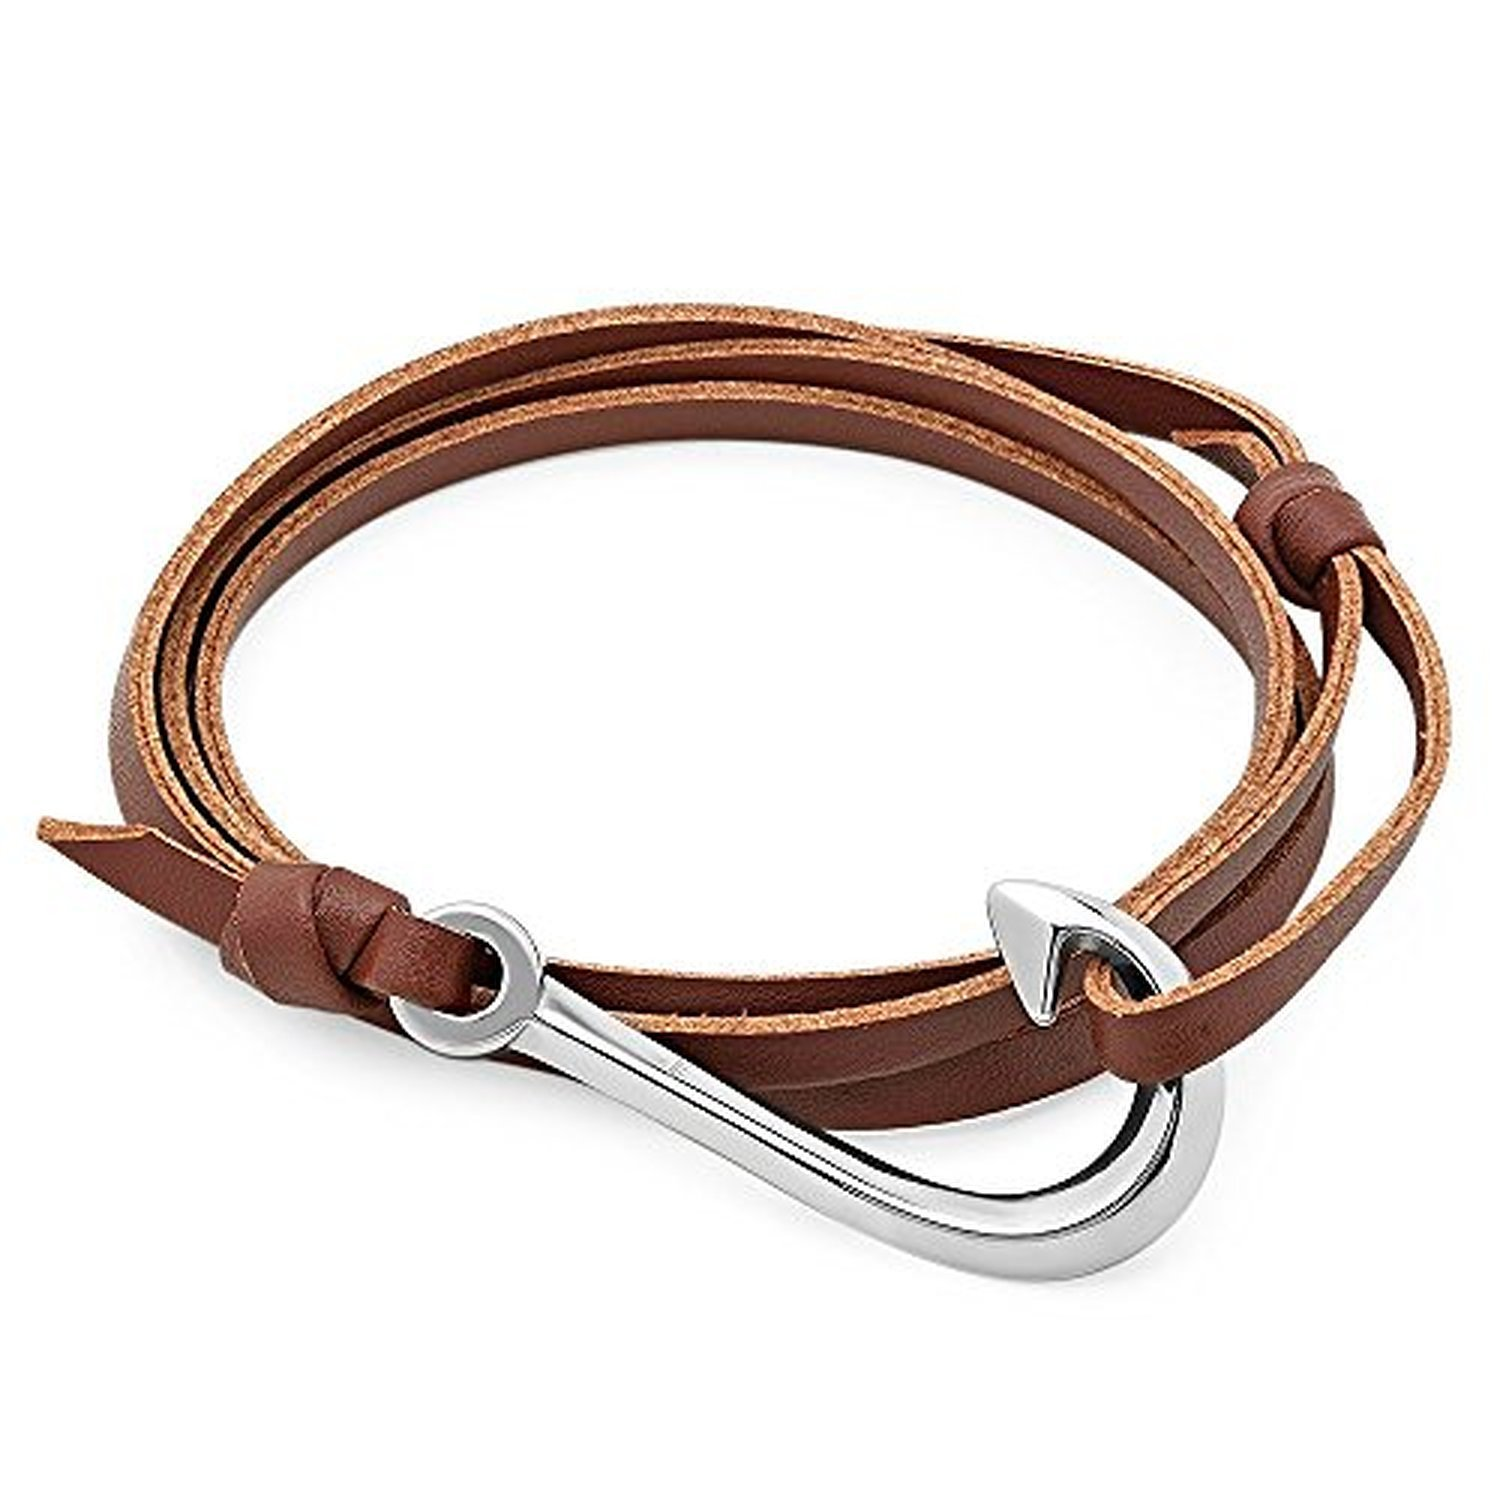 Steeltime men 39 s leather wrap around bracelet with for Leather fish hook bracelet